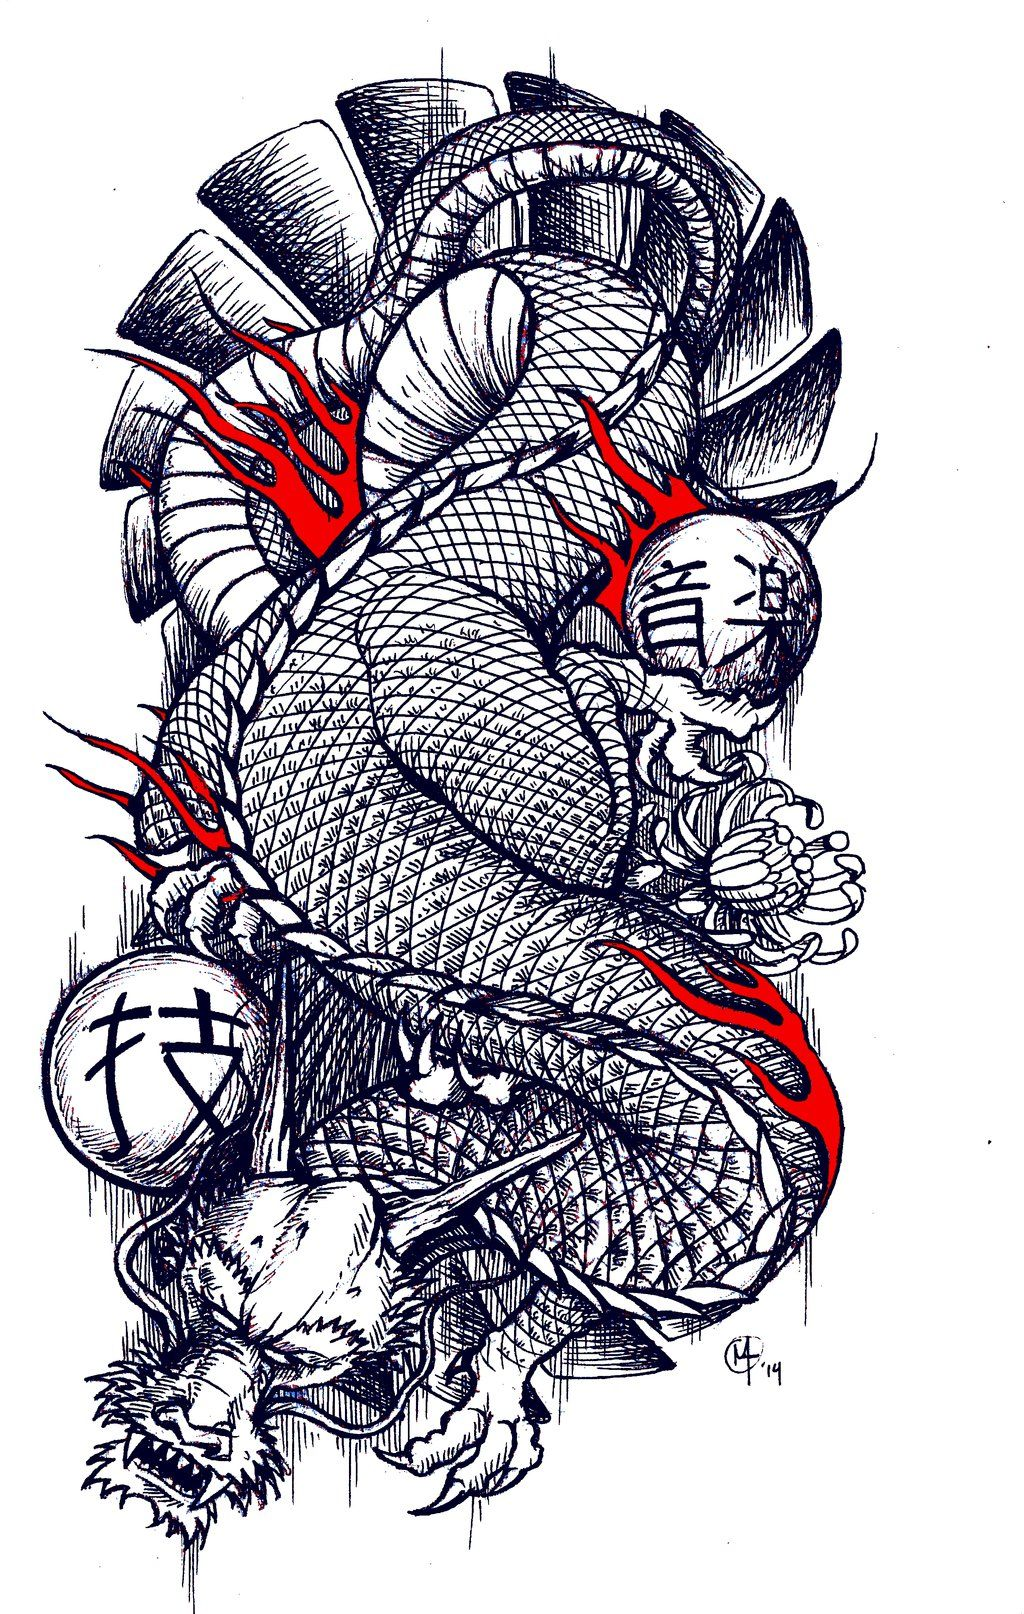 Traditional Japanese Dragon Tattoo Design Japanese Dragon Tattoos Dragon Tattoo Designs Japanese Dragon Tattoo